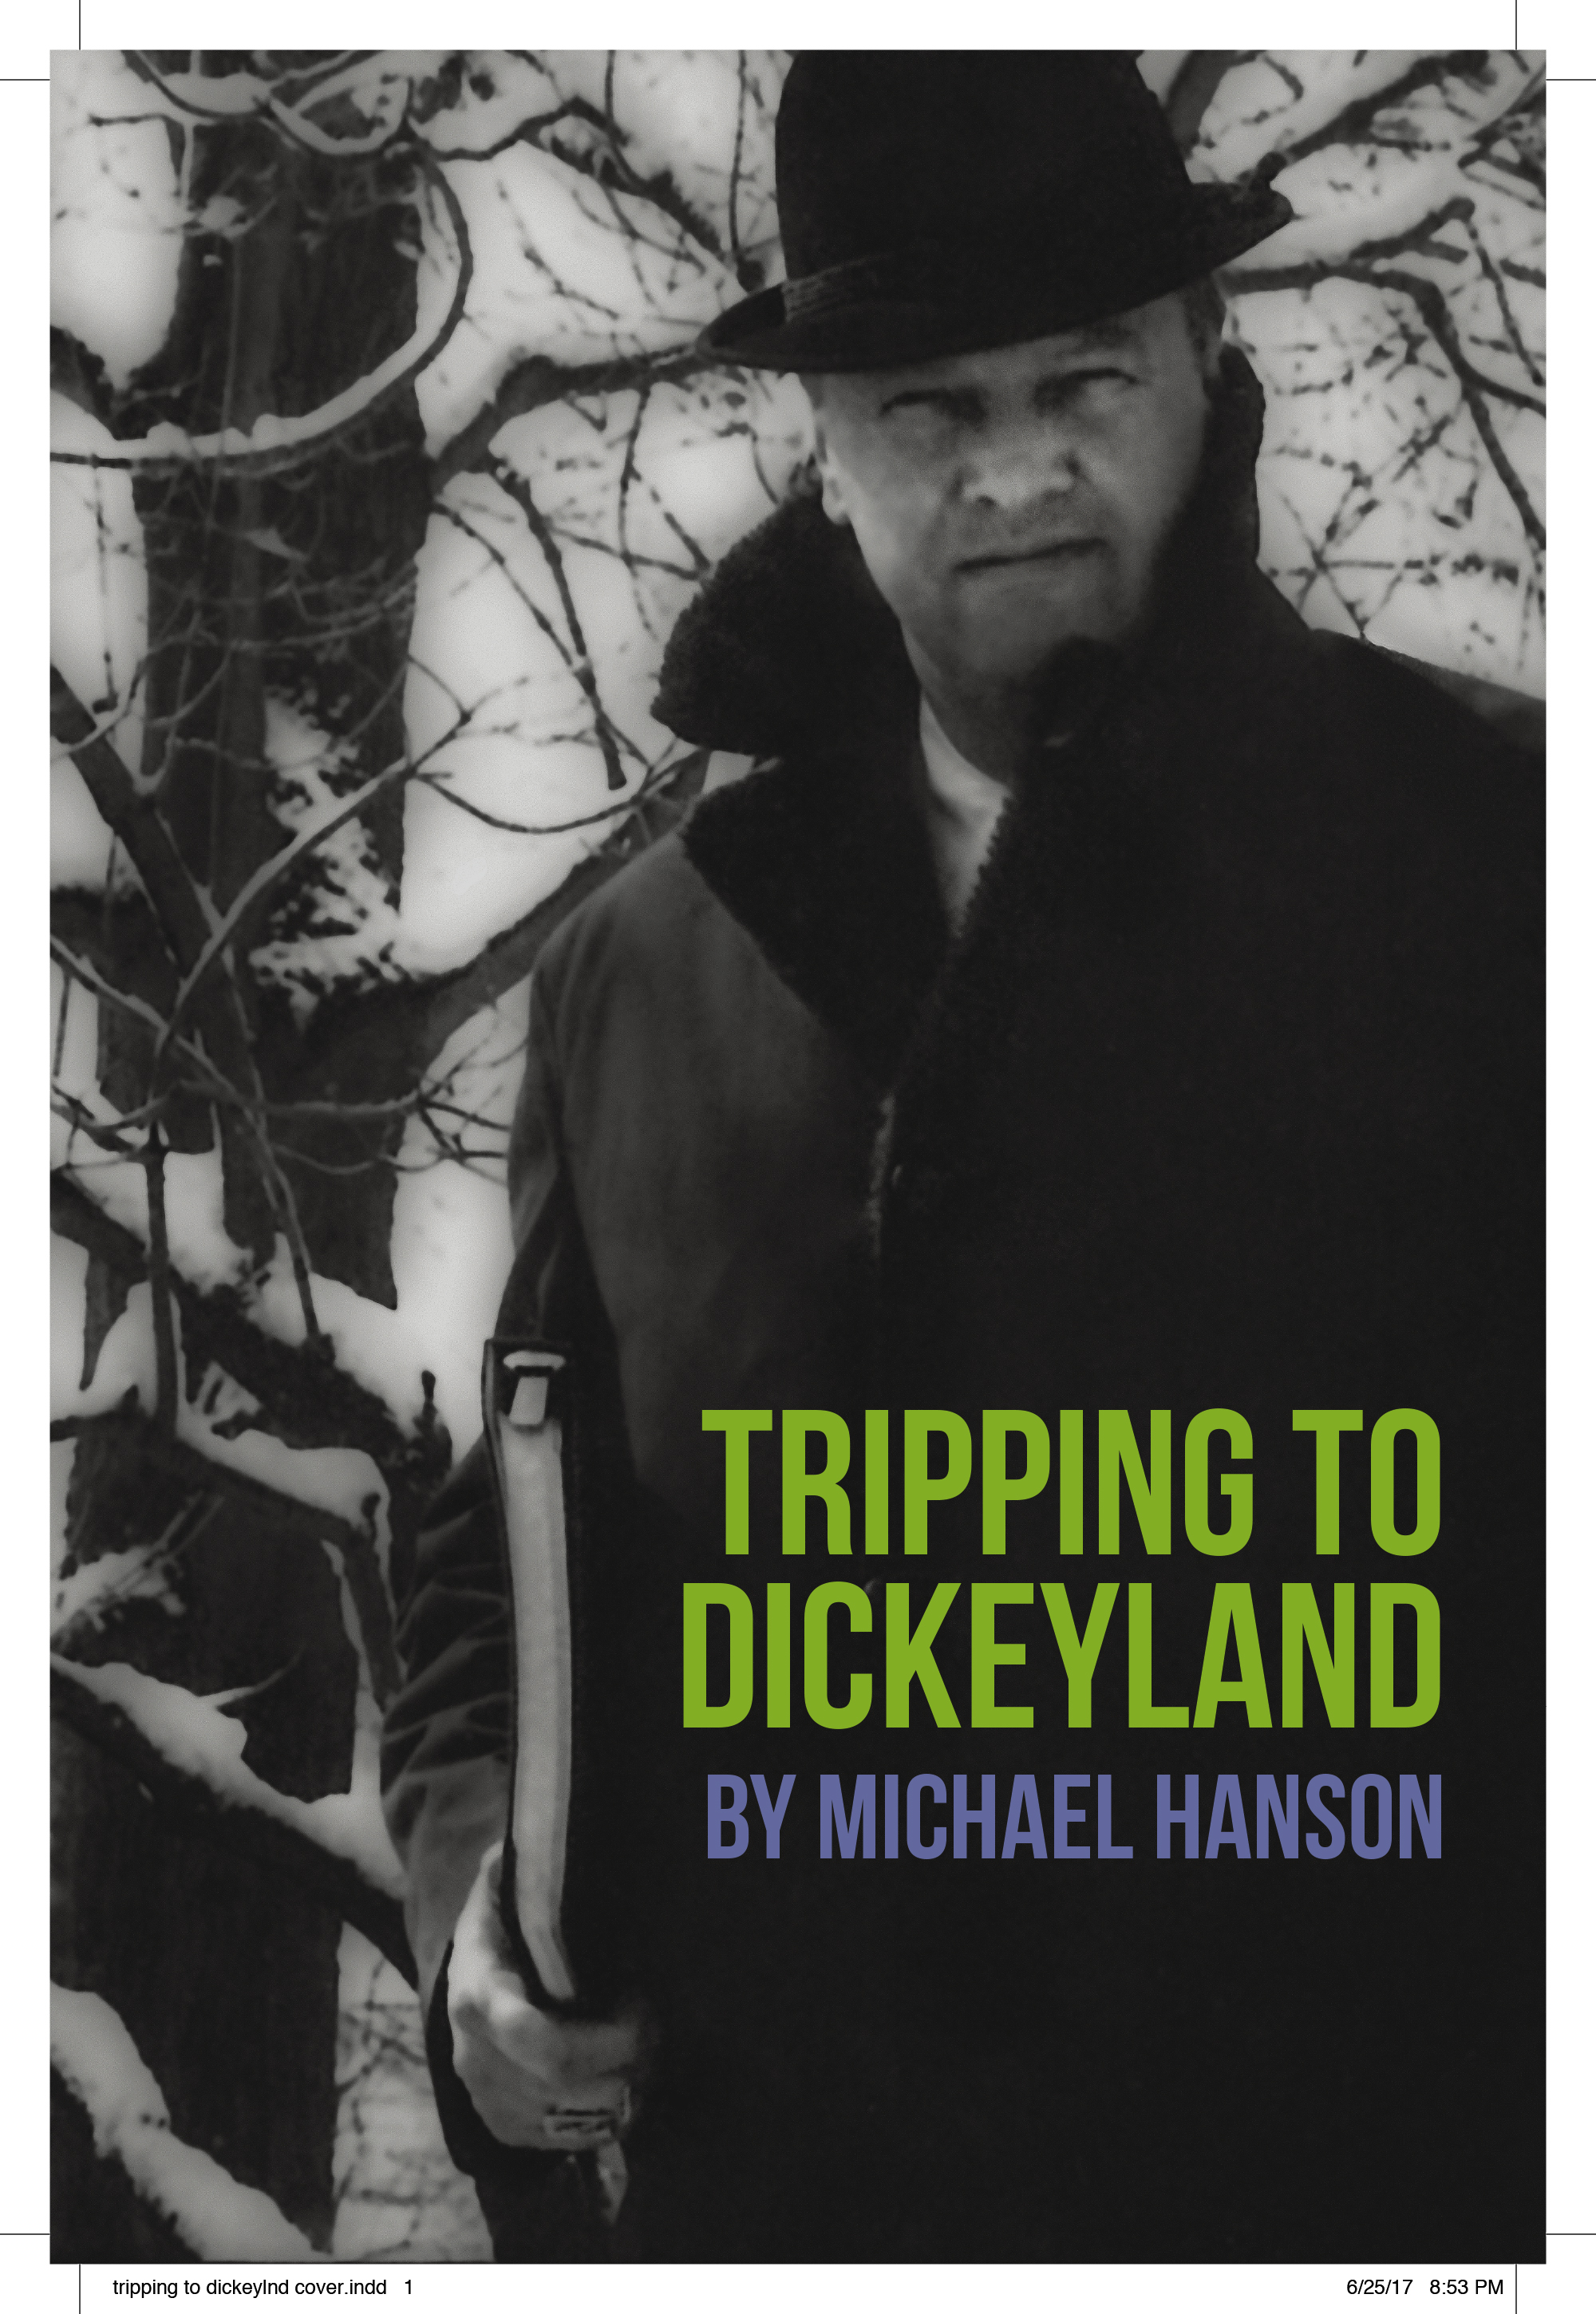 dickeyland-image-front (1).jpg